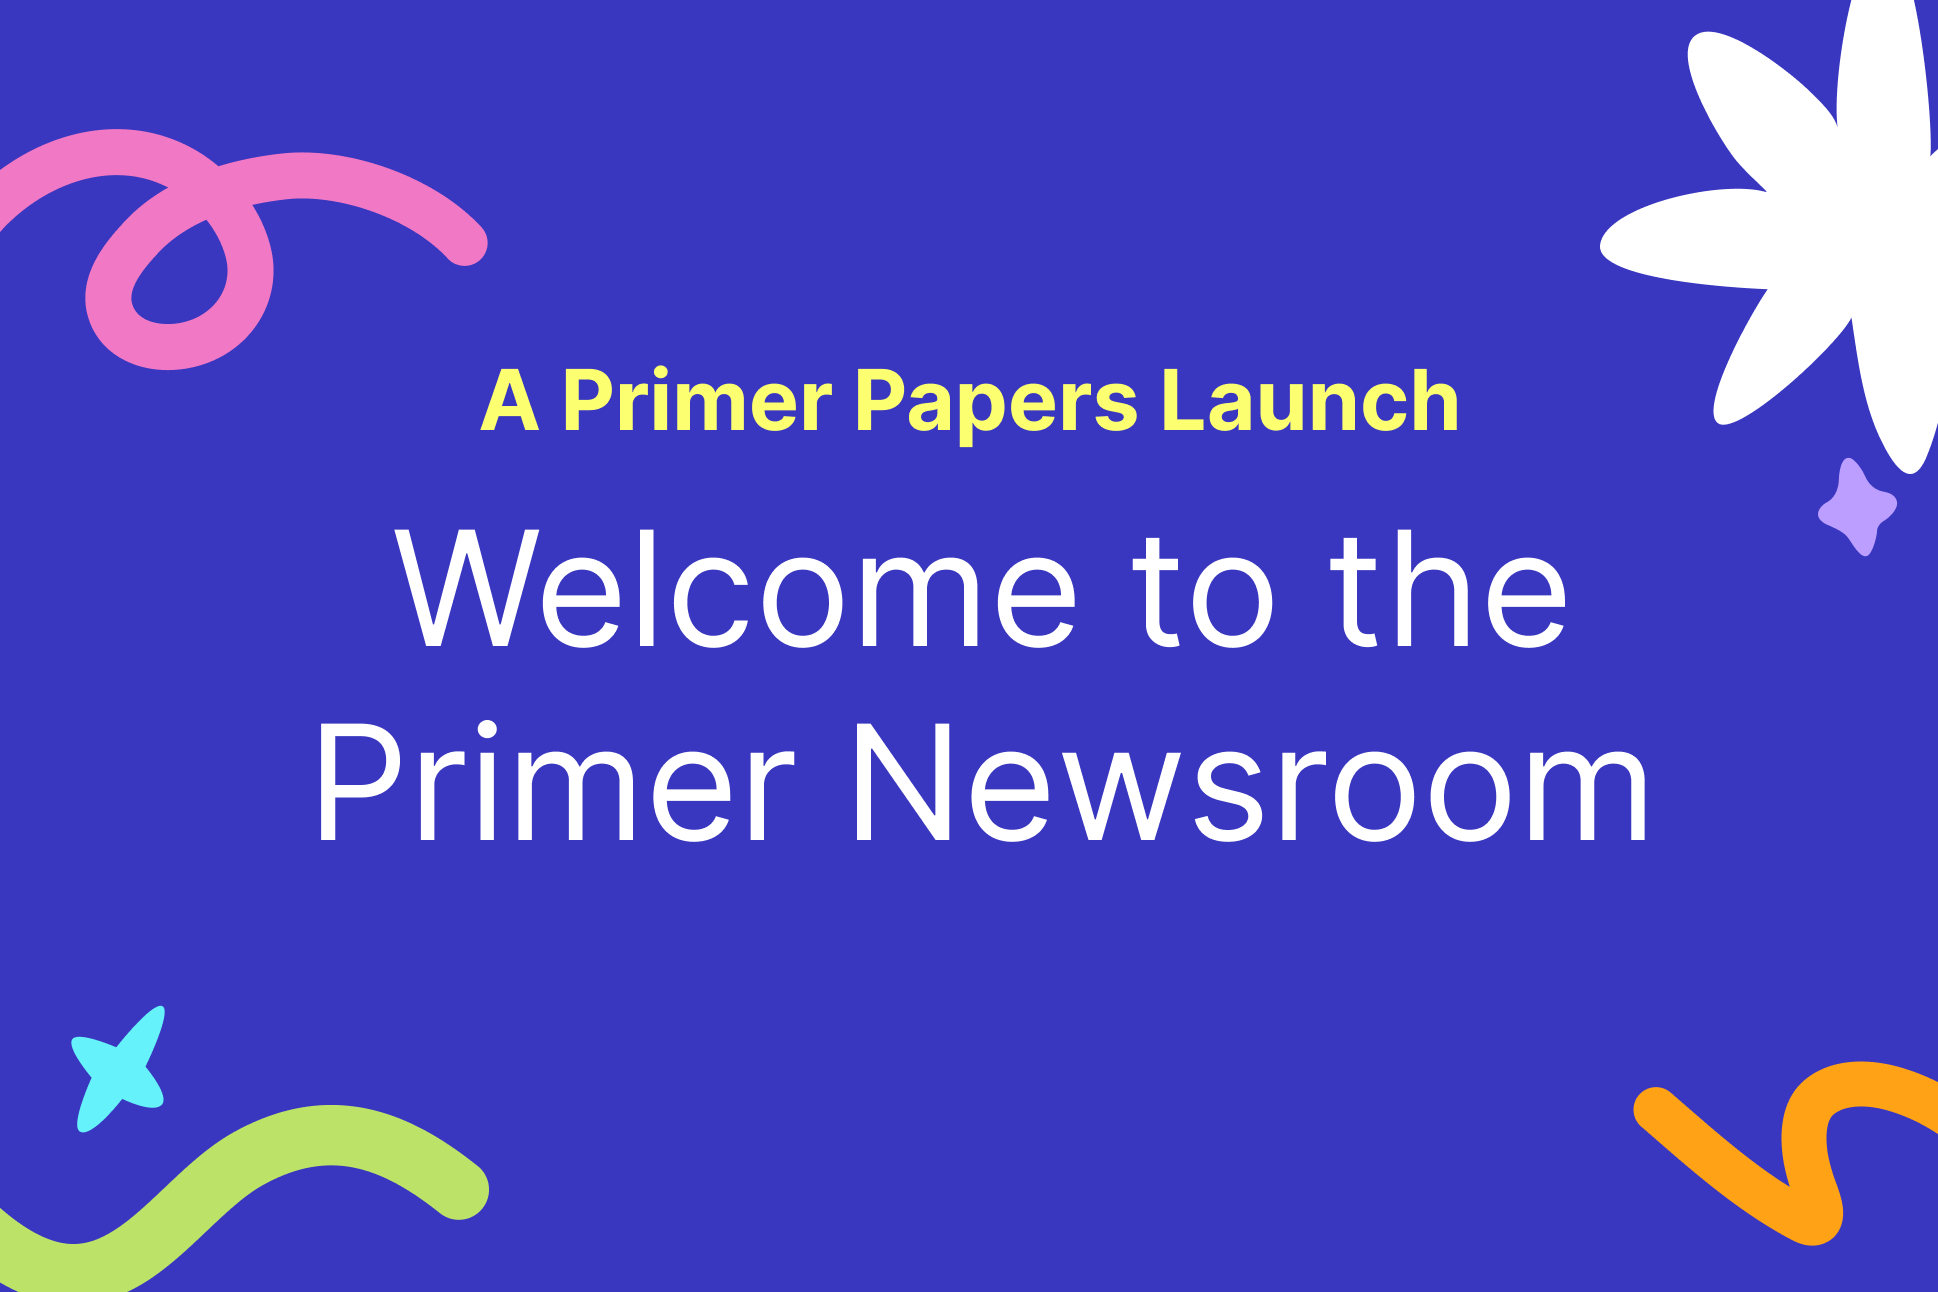 A Warm Welcome to the Primer Newsroom